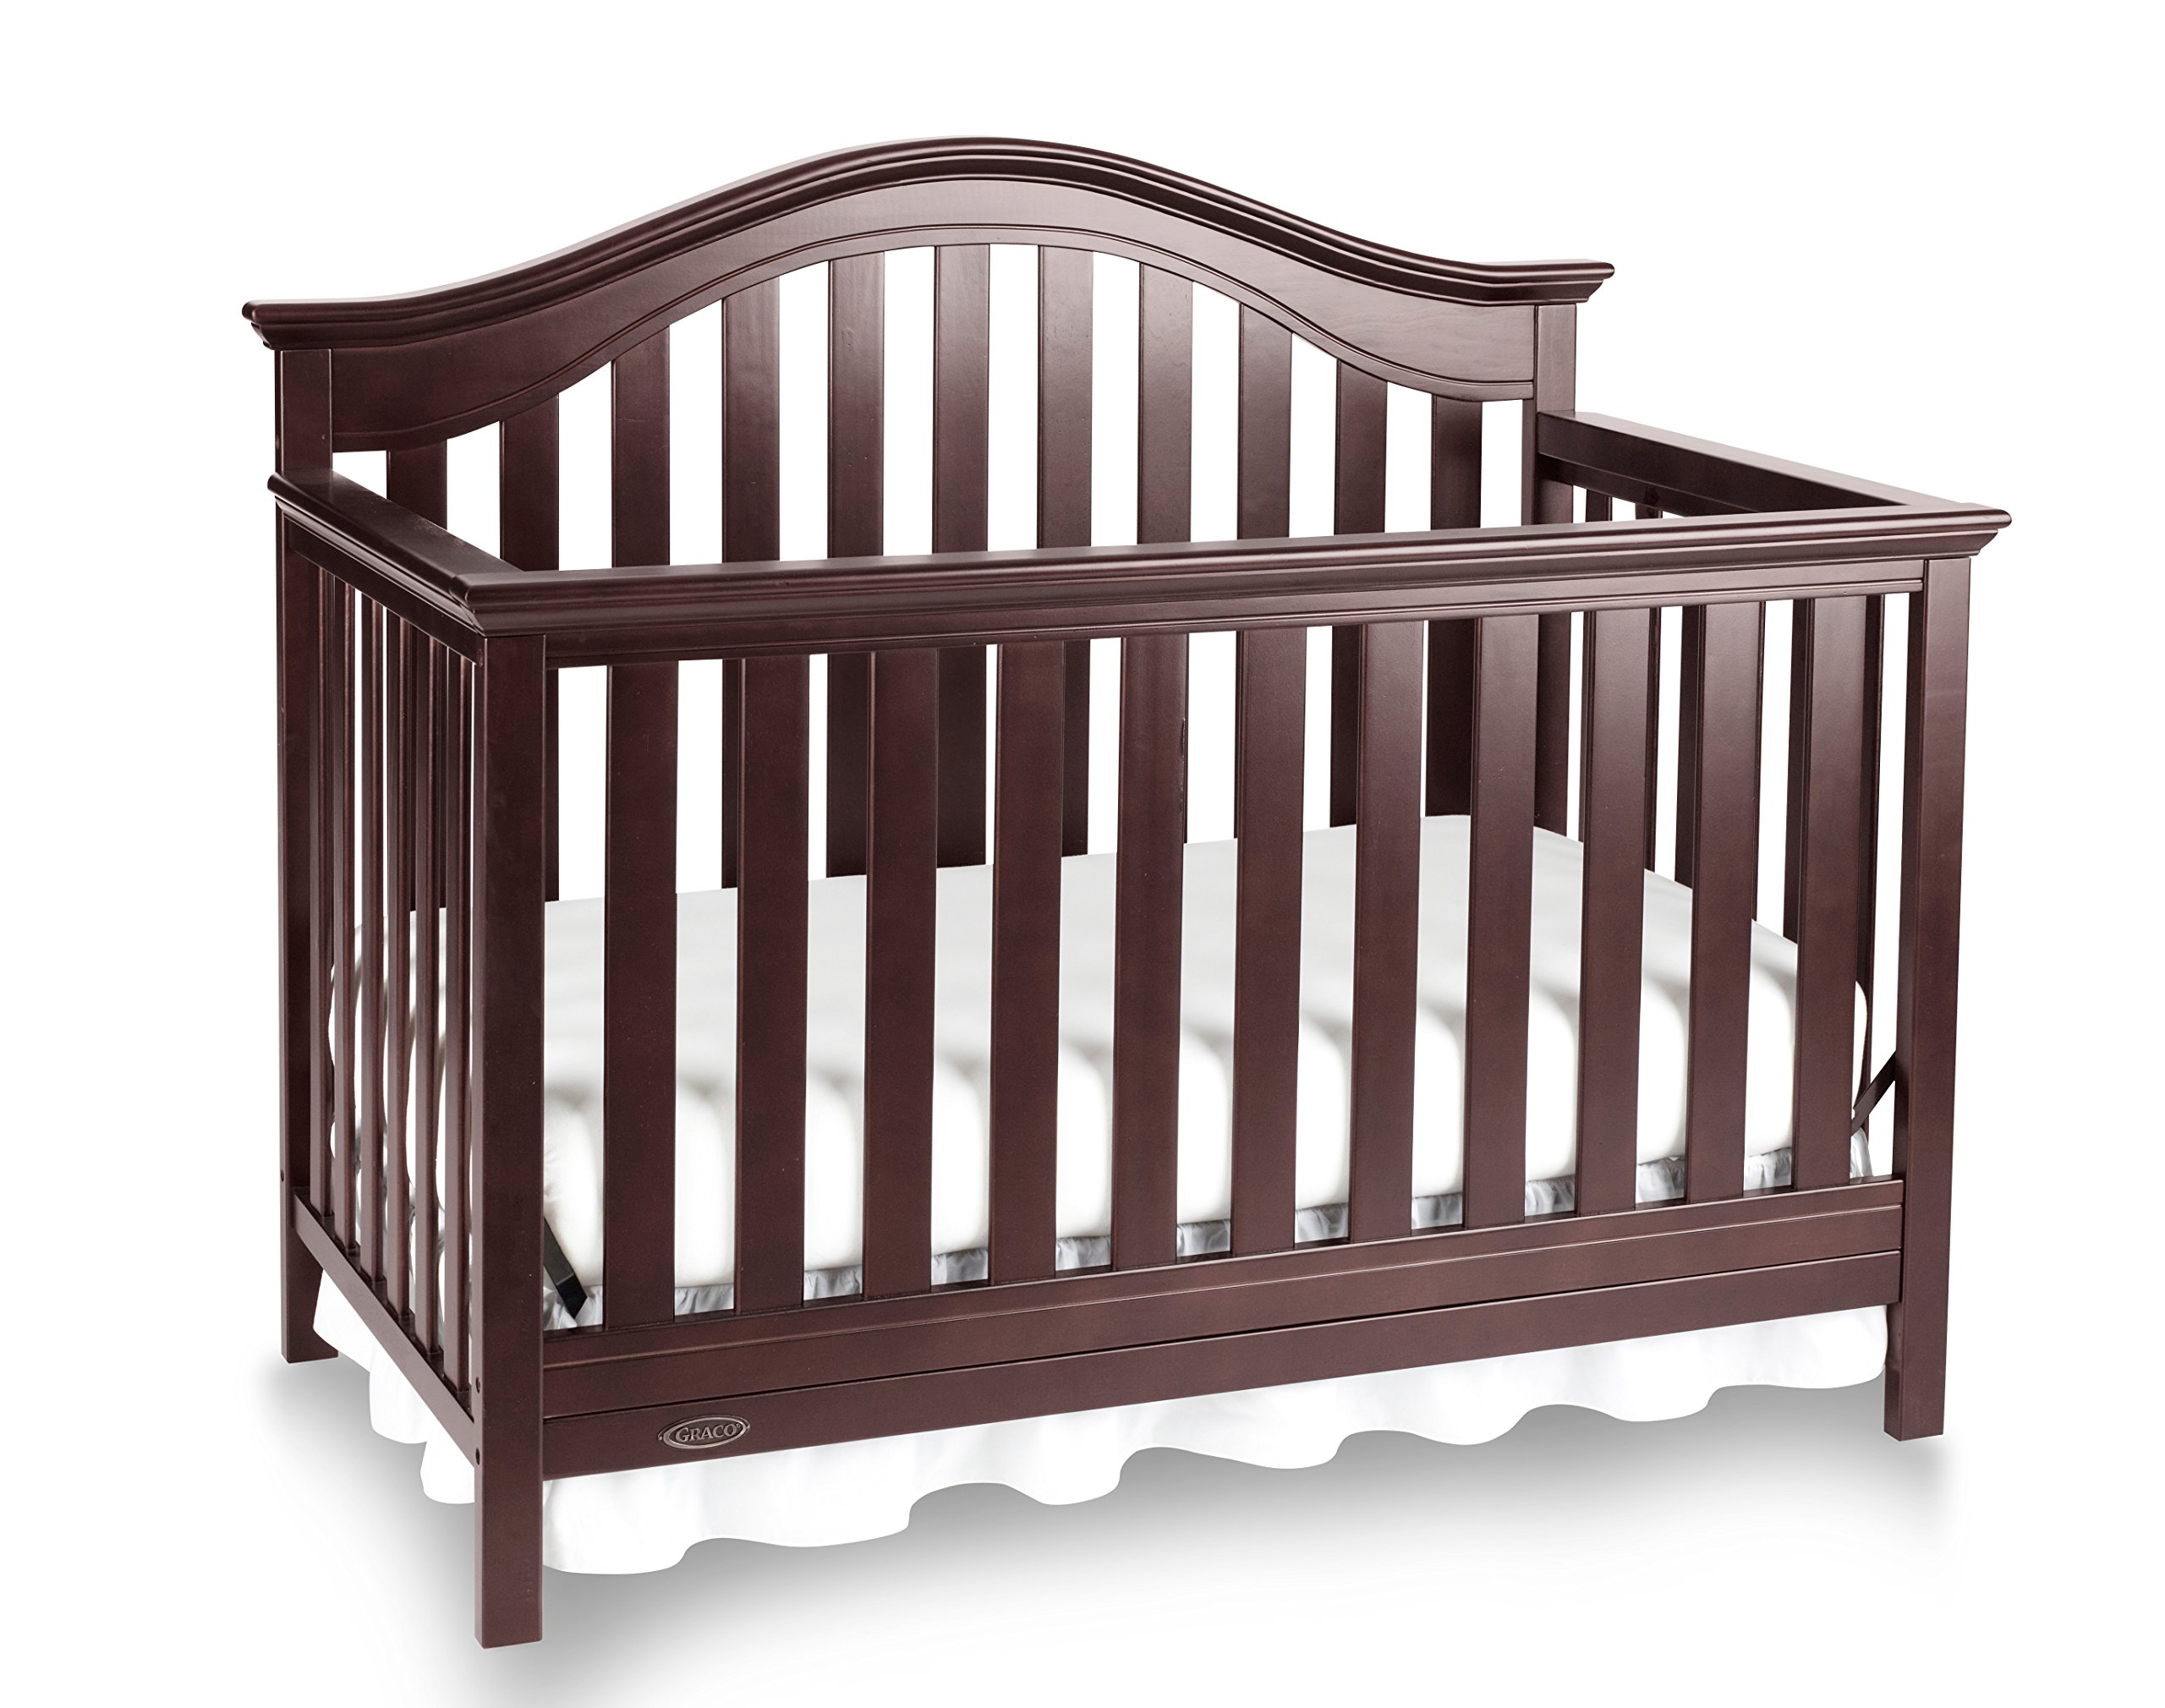 Graco Bryson 4-in-1 Convertible Crib, Espresso, Easily Converts to Toddler Bed Day Bed or Full Bed, Three Position Adjustable Height Mattress, Some Assembly Required (Mattress Not Included) by Storkcraft